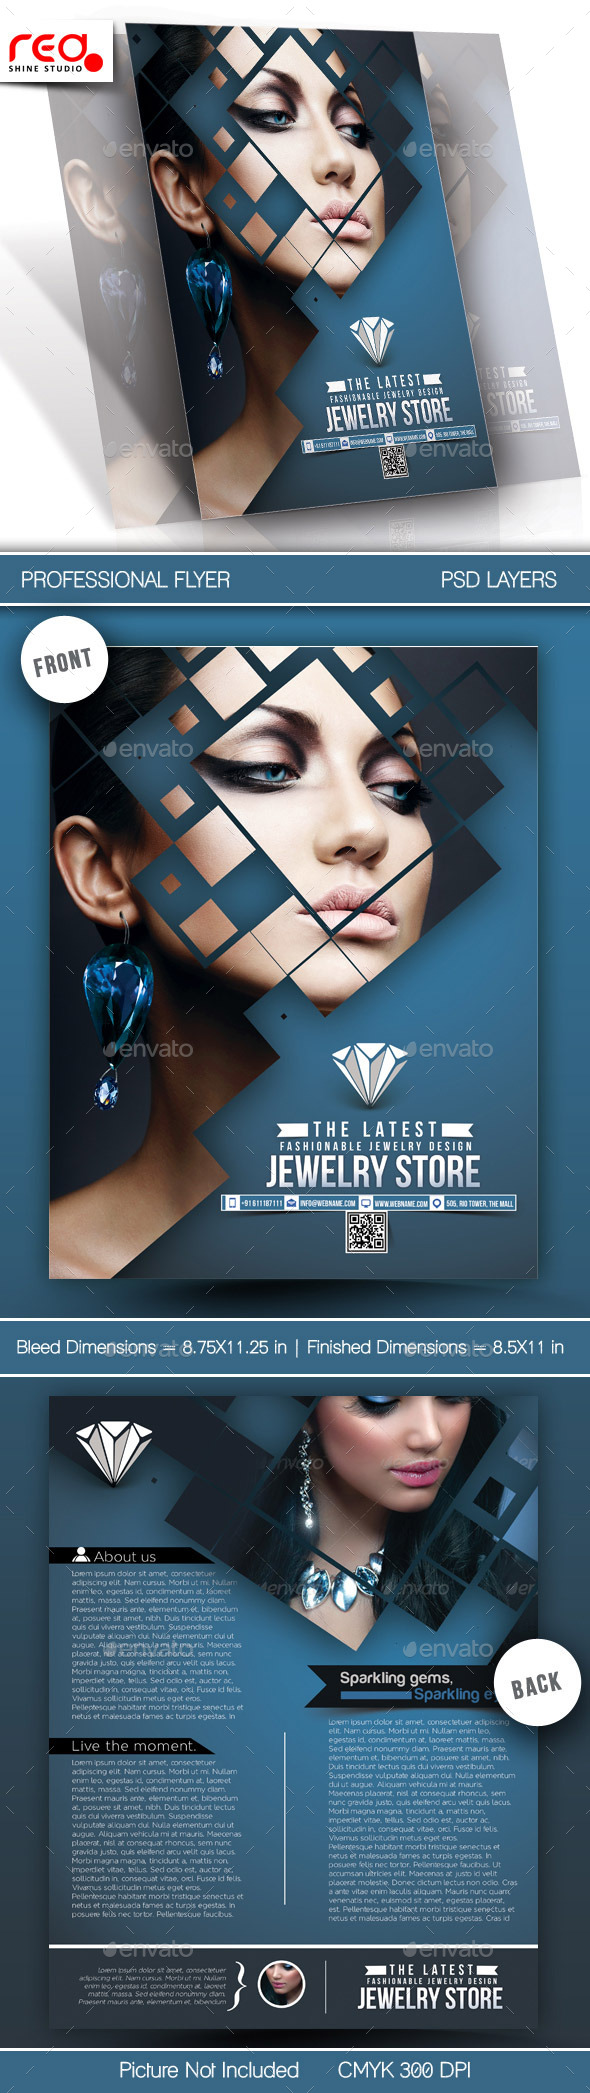 Jewelry Store Flyer Template By Redshinestudio Graphicriver